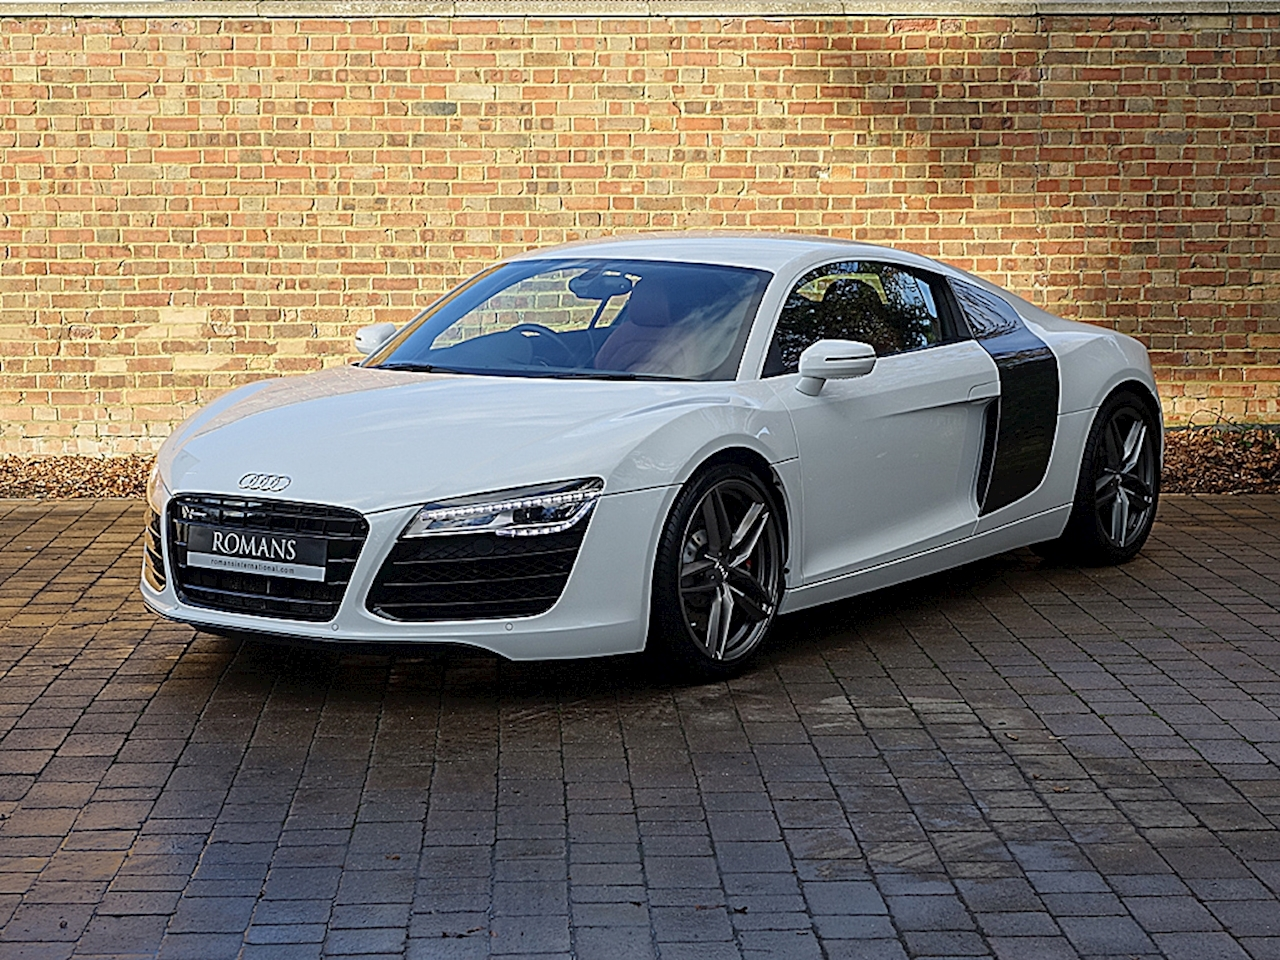 2014 used audi r8 ibis white. Black Bedroom Furniture Sets. Home Design Ideas